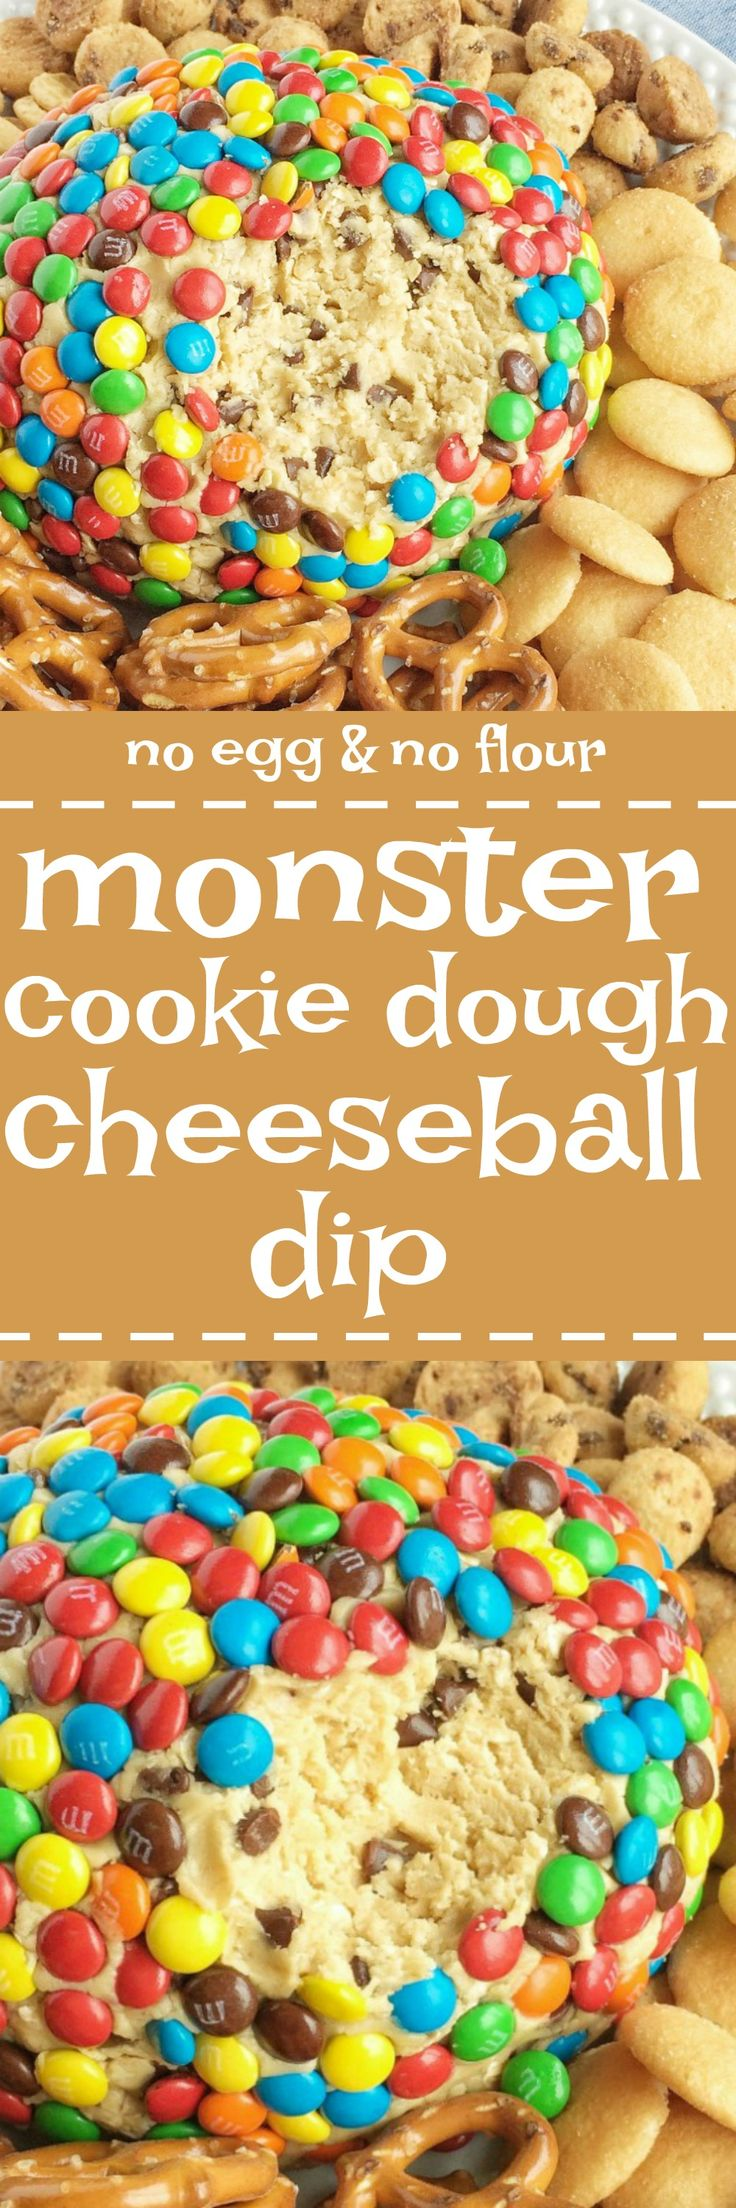 Monster cookie dough cheeseball dip has no eggs and no flour! Everything you love about monster cookies; oats, peanut butter, chocolate chips, and m&m's but in a fun and tasty cheeseball. Serve with pretzels, graham crackers, and cookies